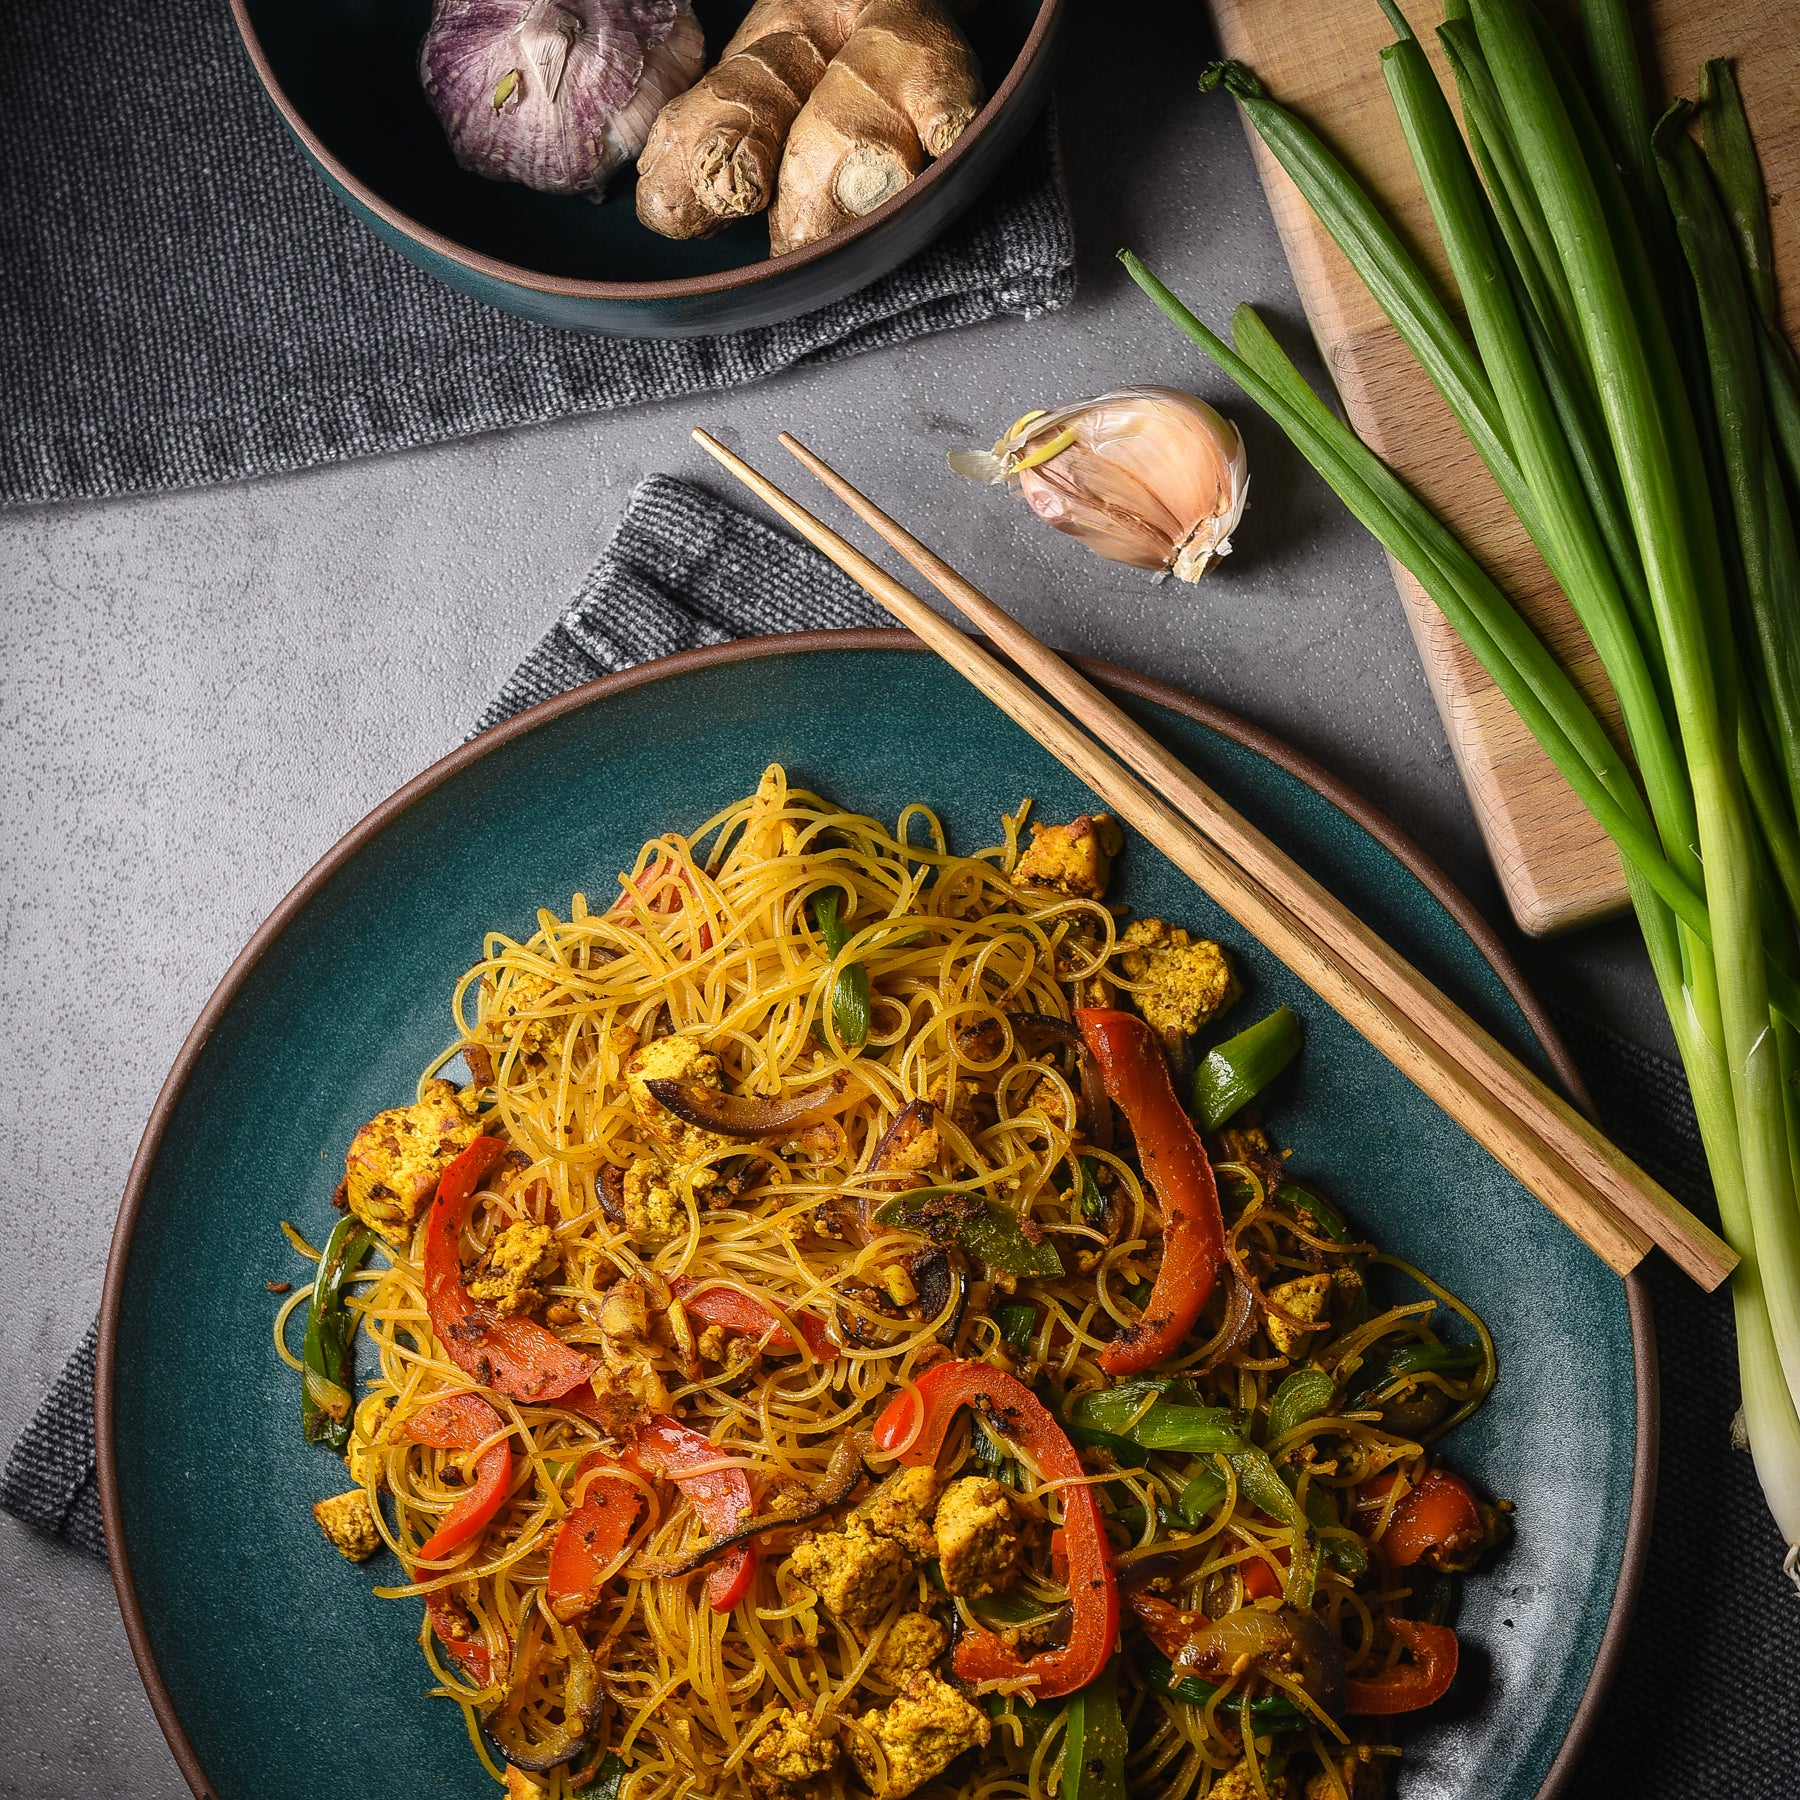 A plate of noodles with veggies surrounded by raw ingredients and chopsticks